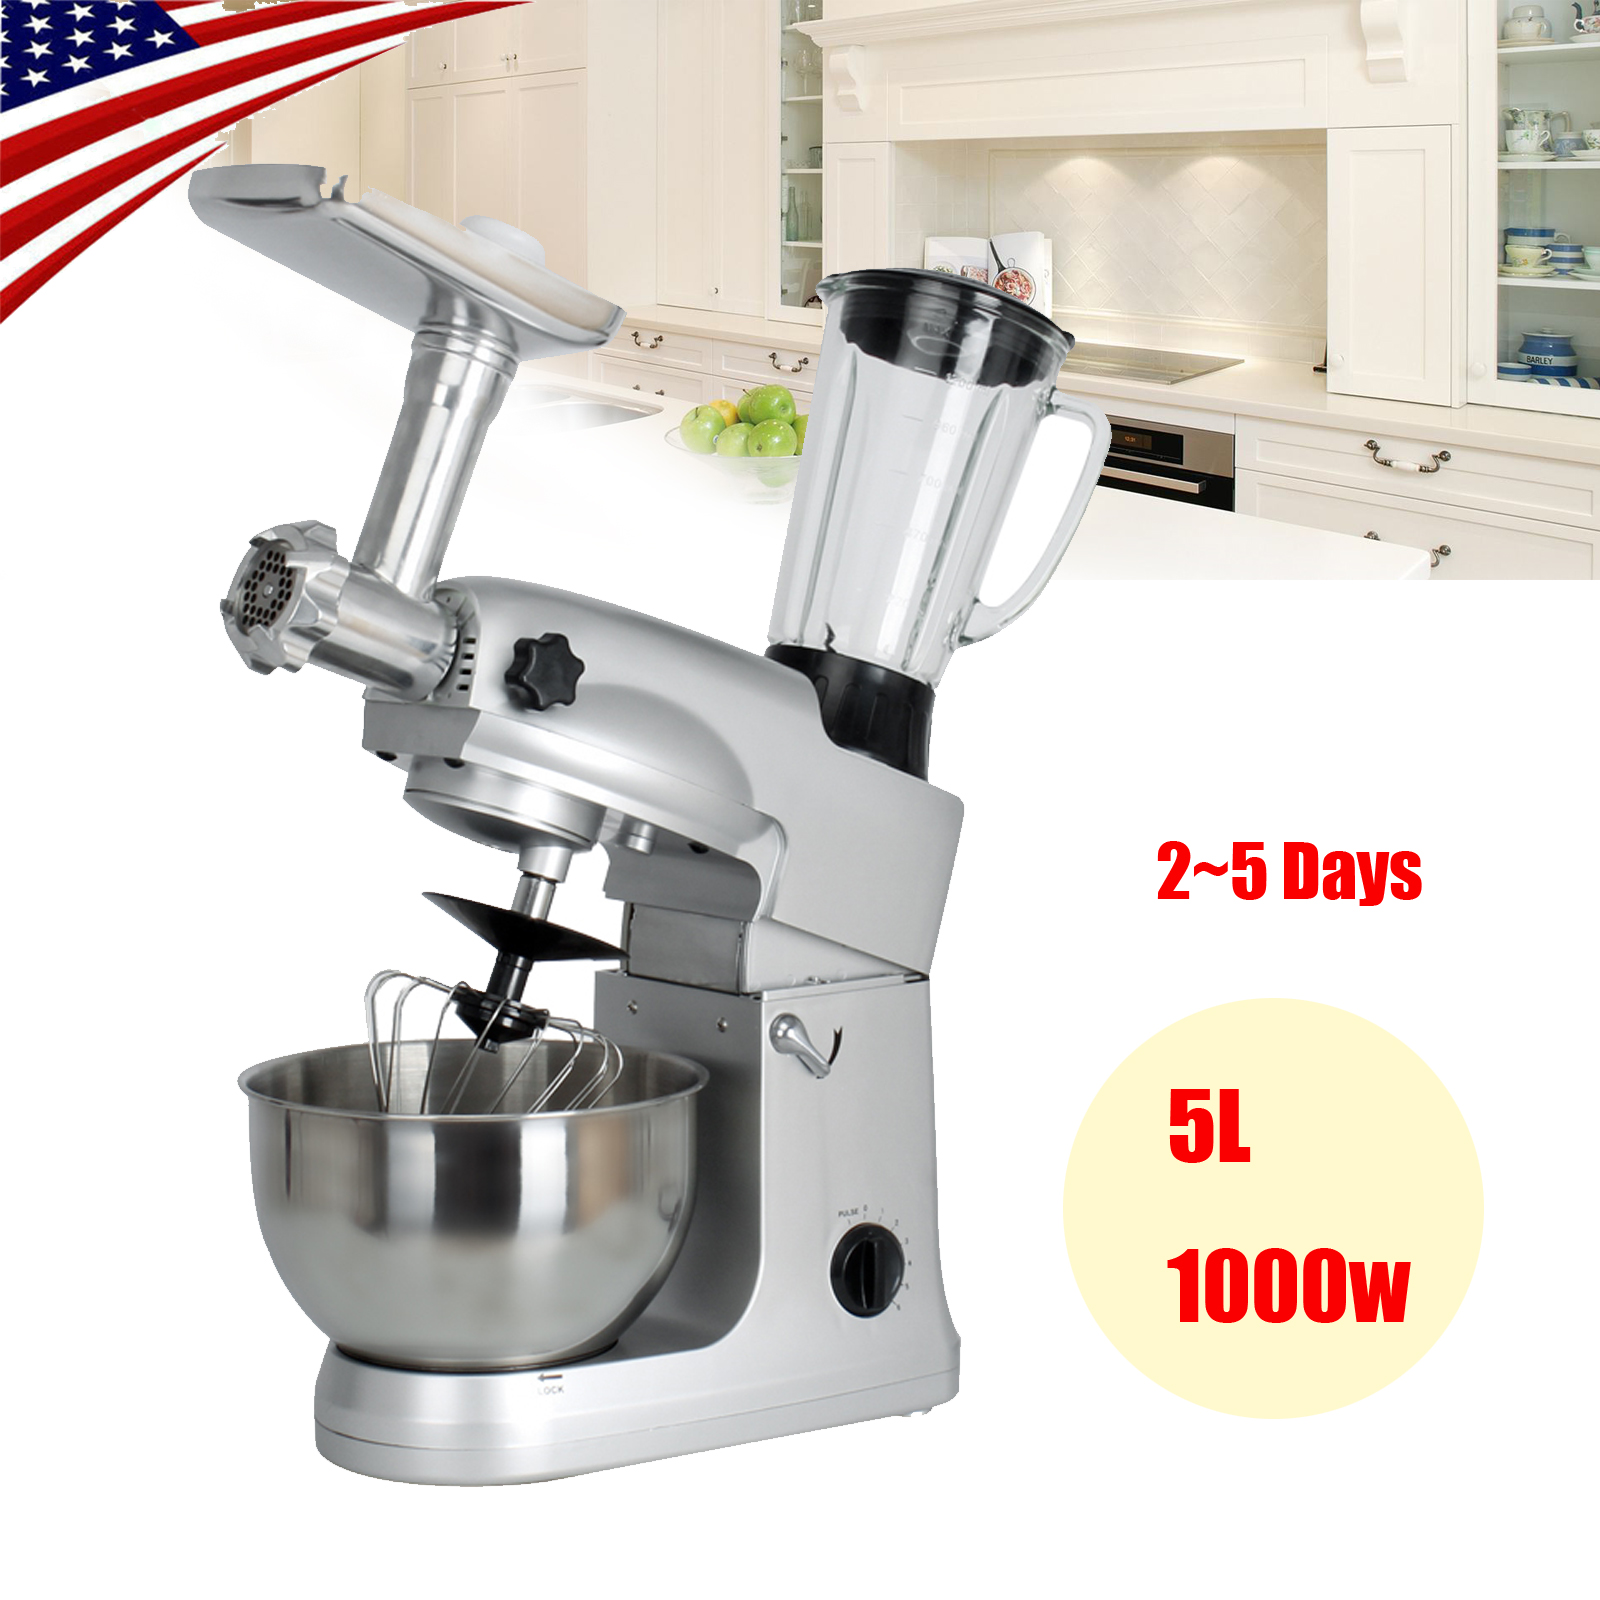 Portable Heavy Duty Stand Mixer 5L Powerful Motor Classic Plus Meat Grinder